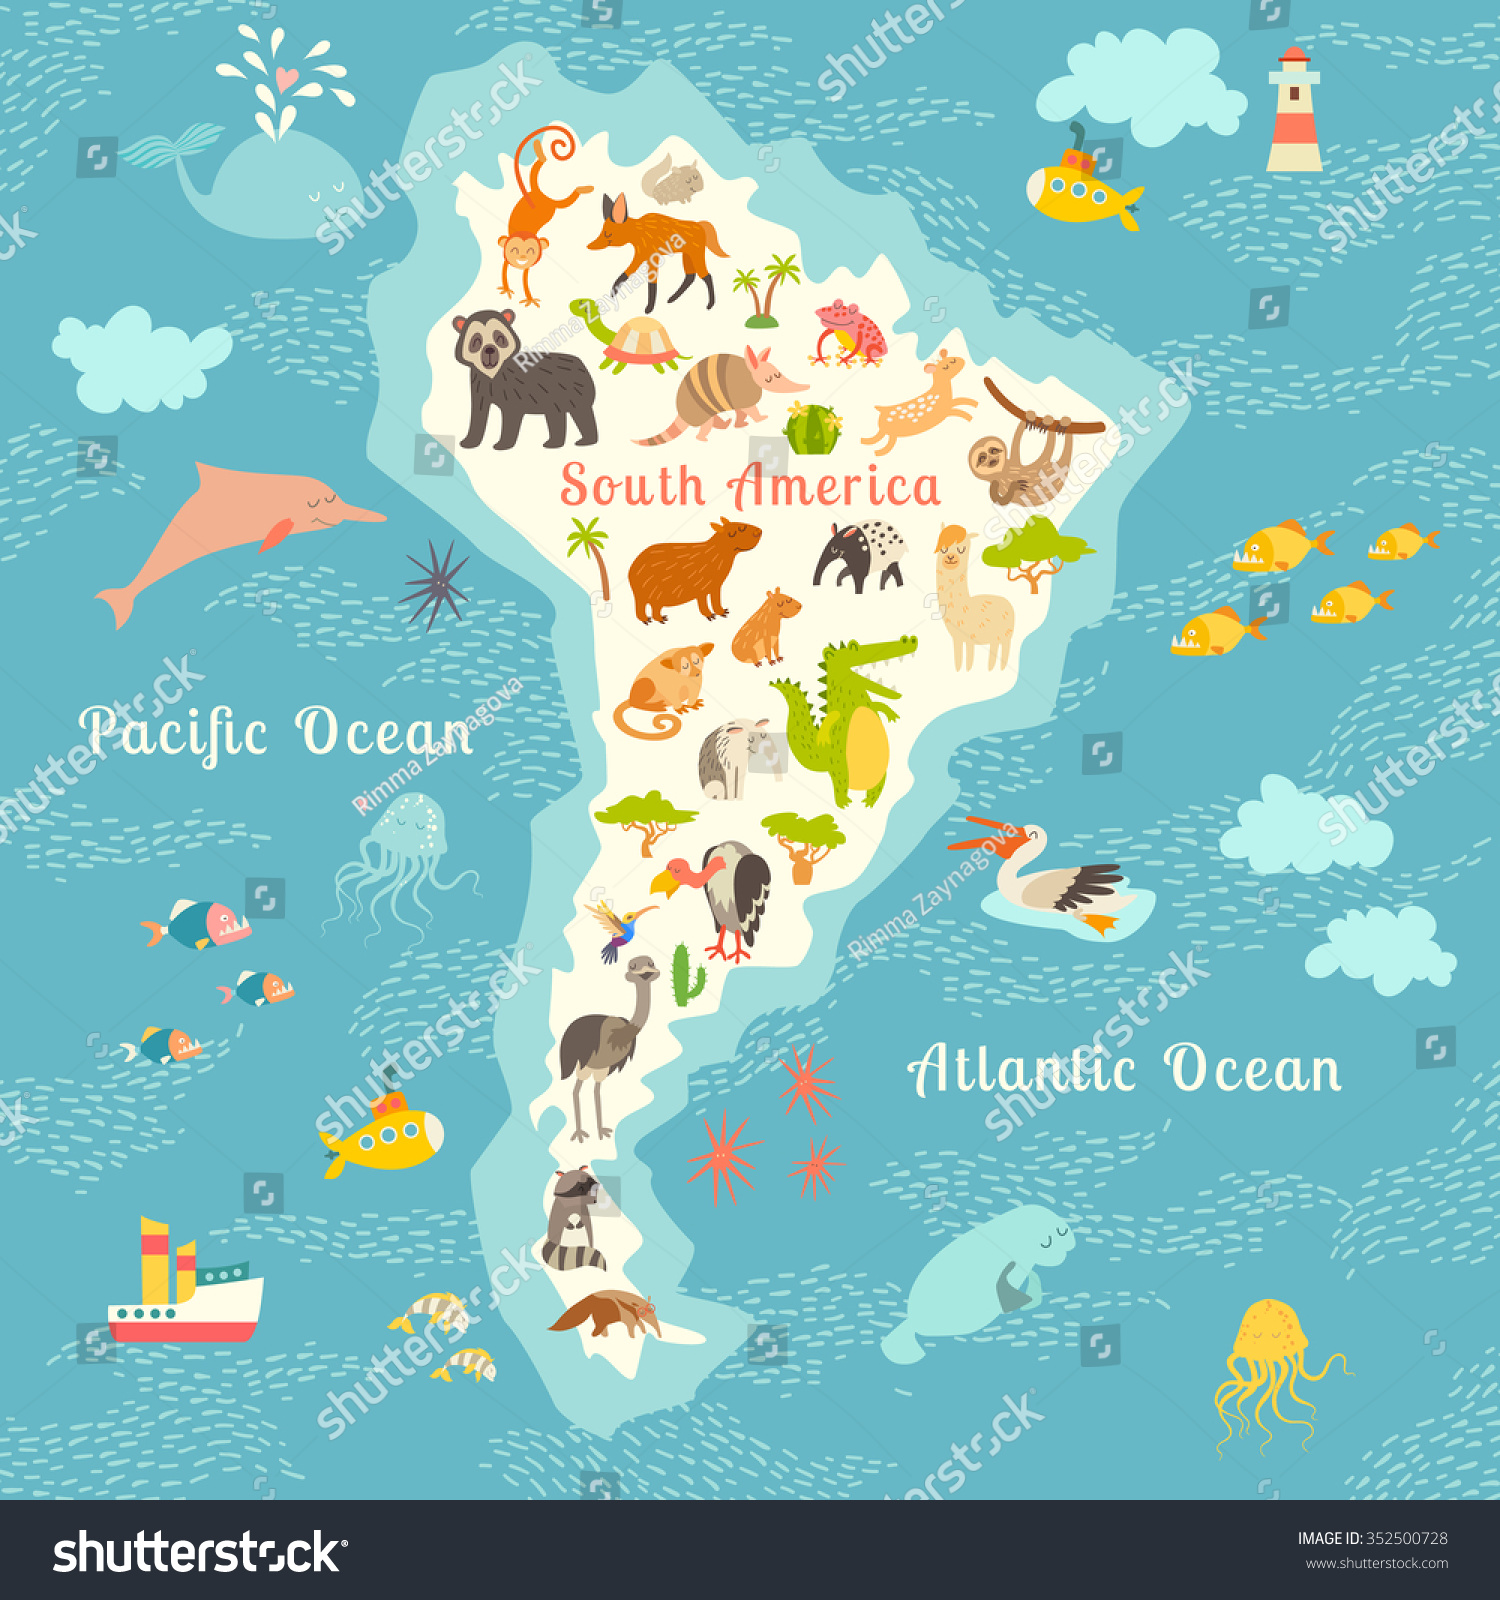 Animals world map south america south stock vector 352500728 animals world map south america south american animals posteruth america mammals cartoon gumiabroncs Image collections